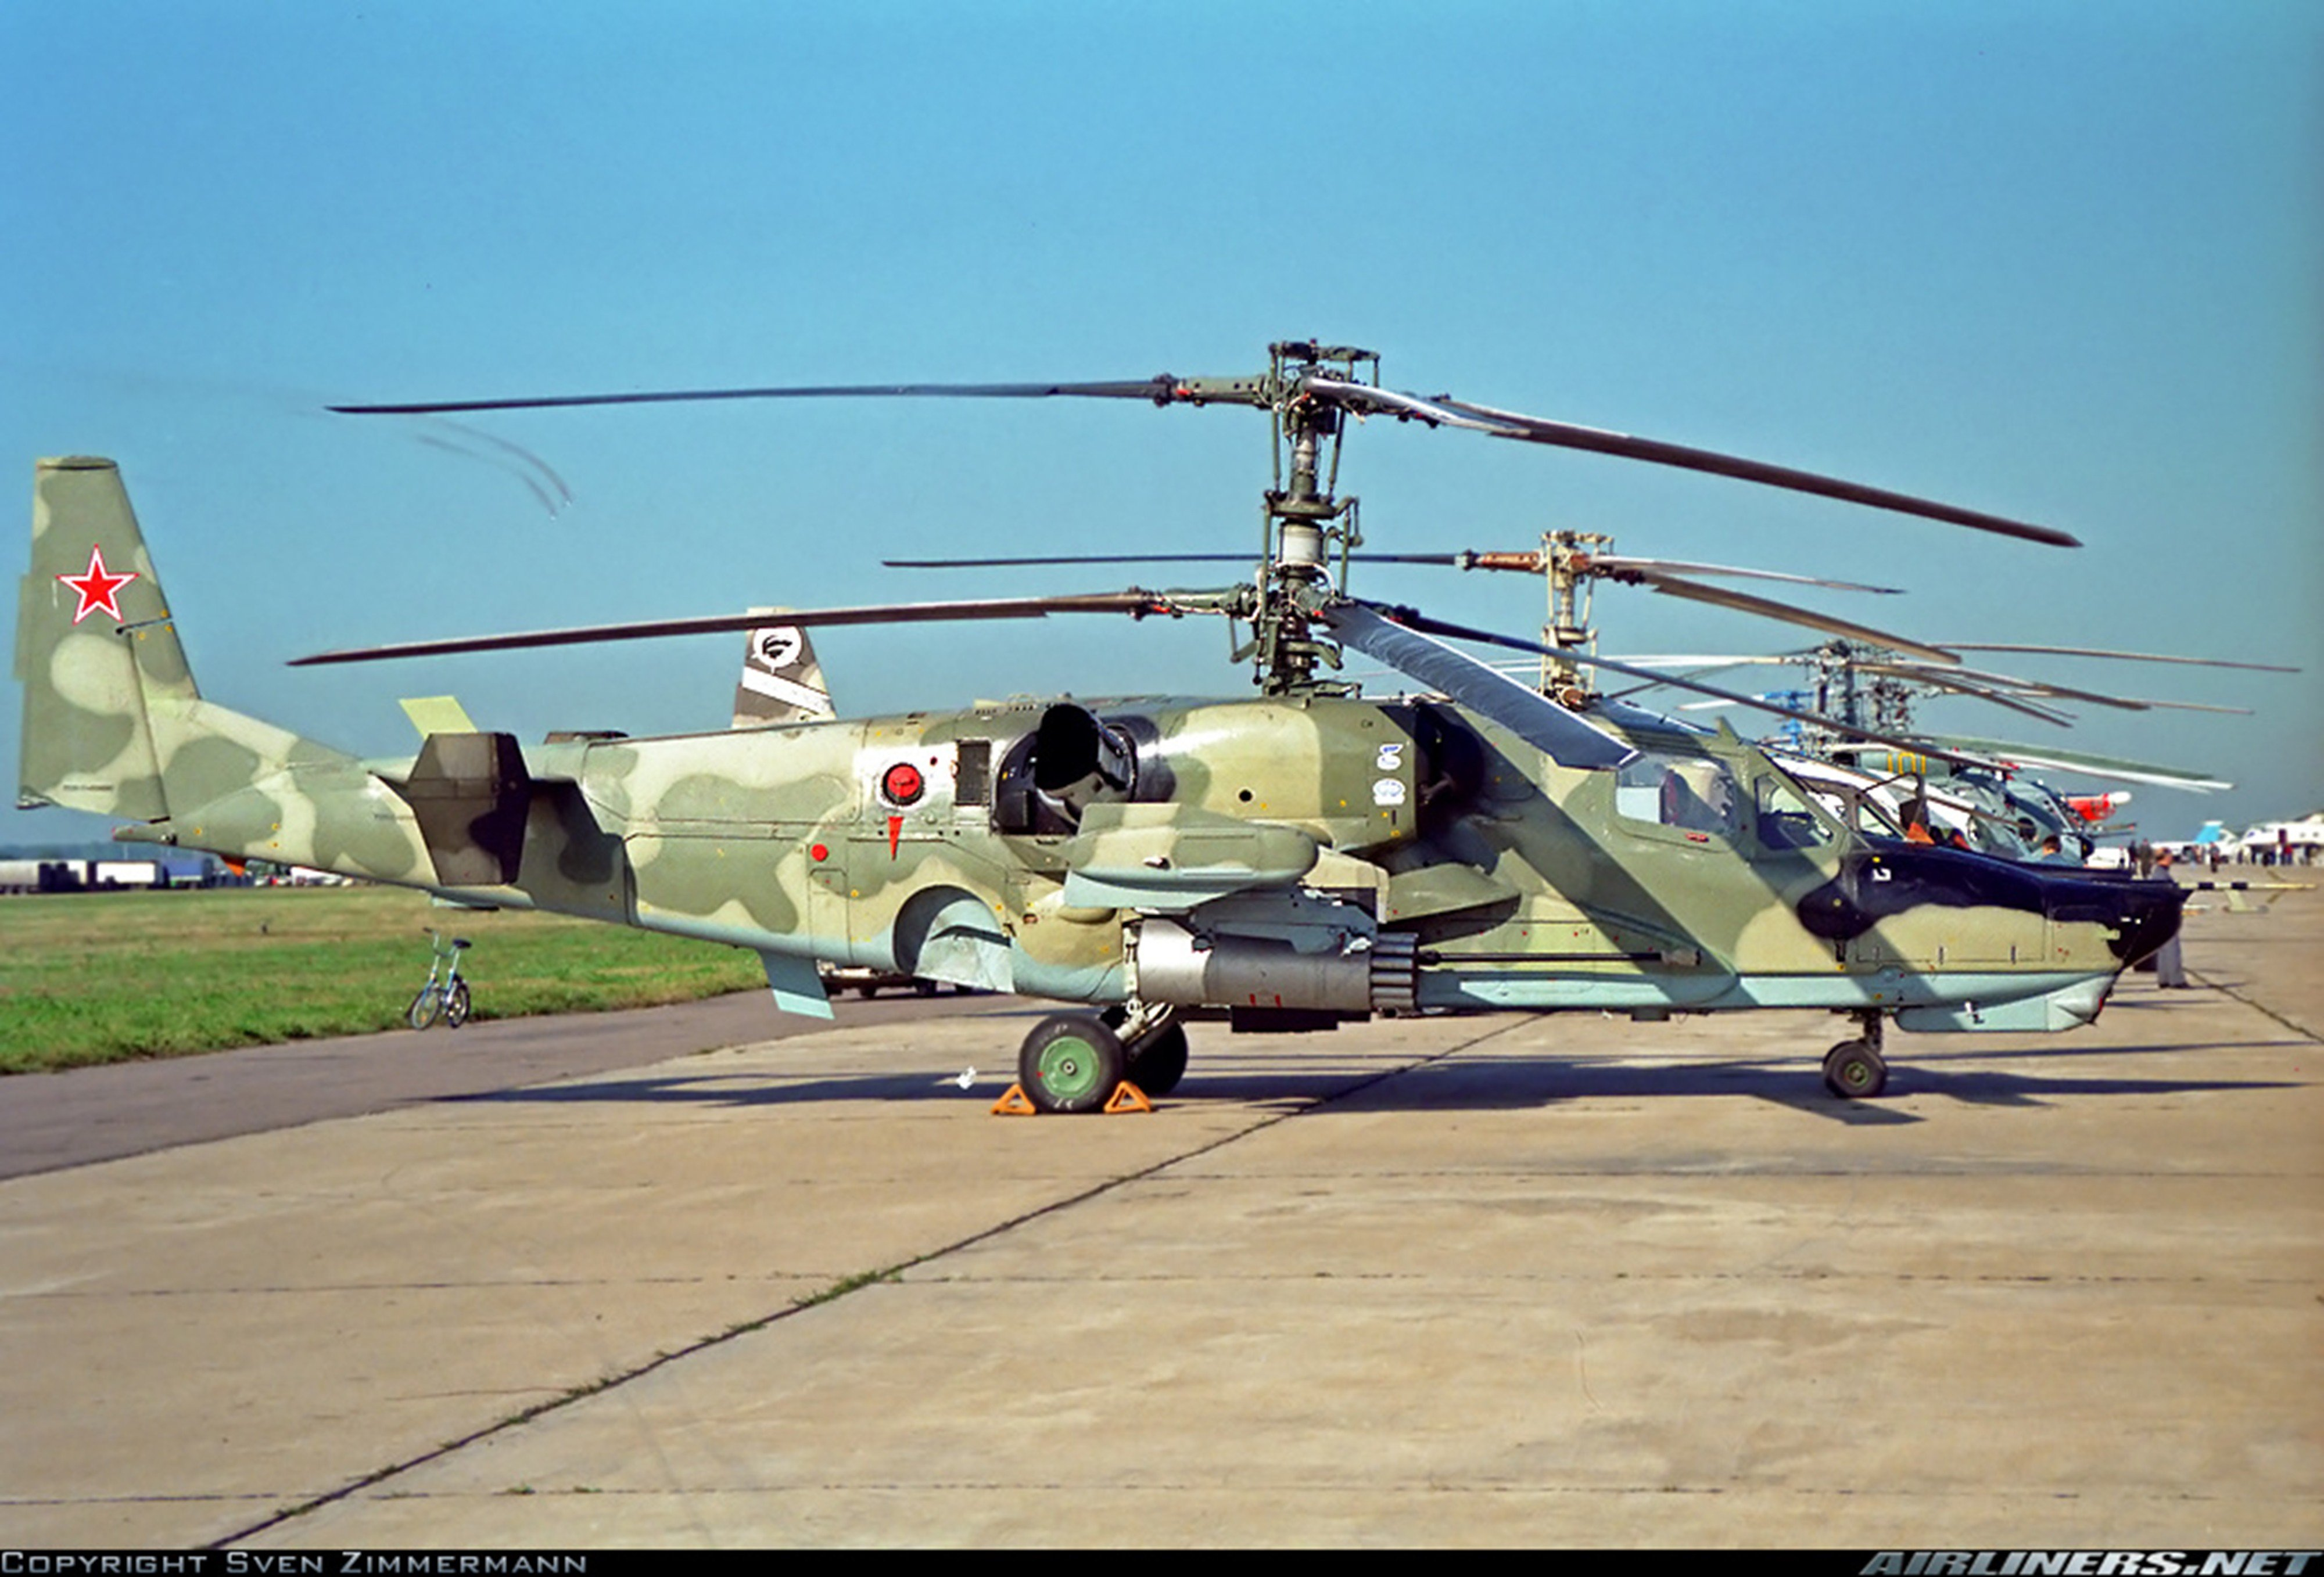 russian red star Russia helicopter aircraft Kamov Ka-52 Alligator attack military army